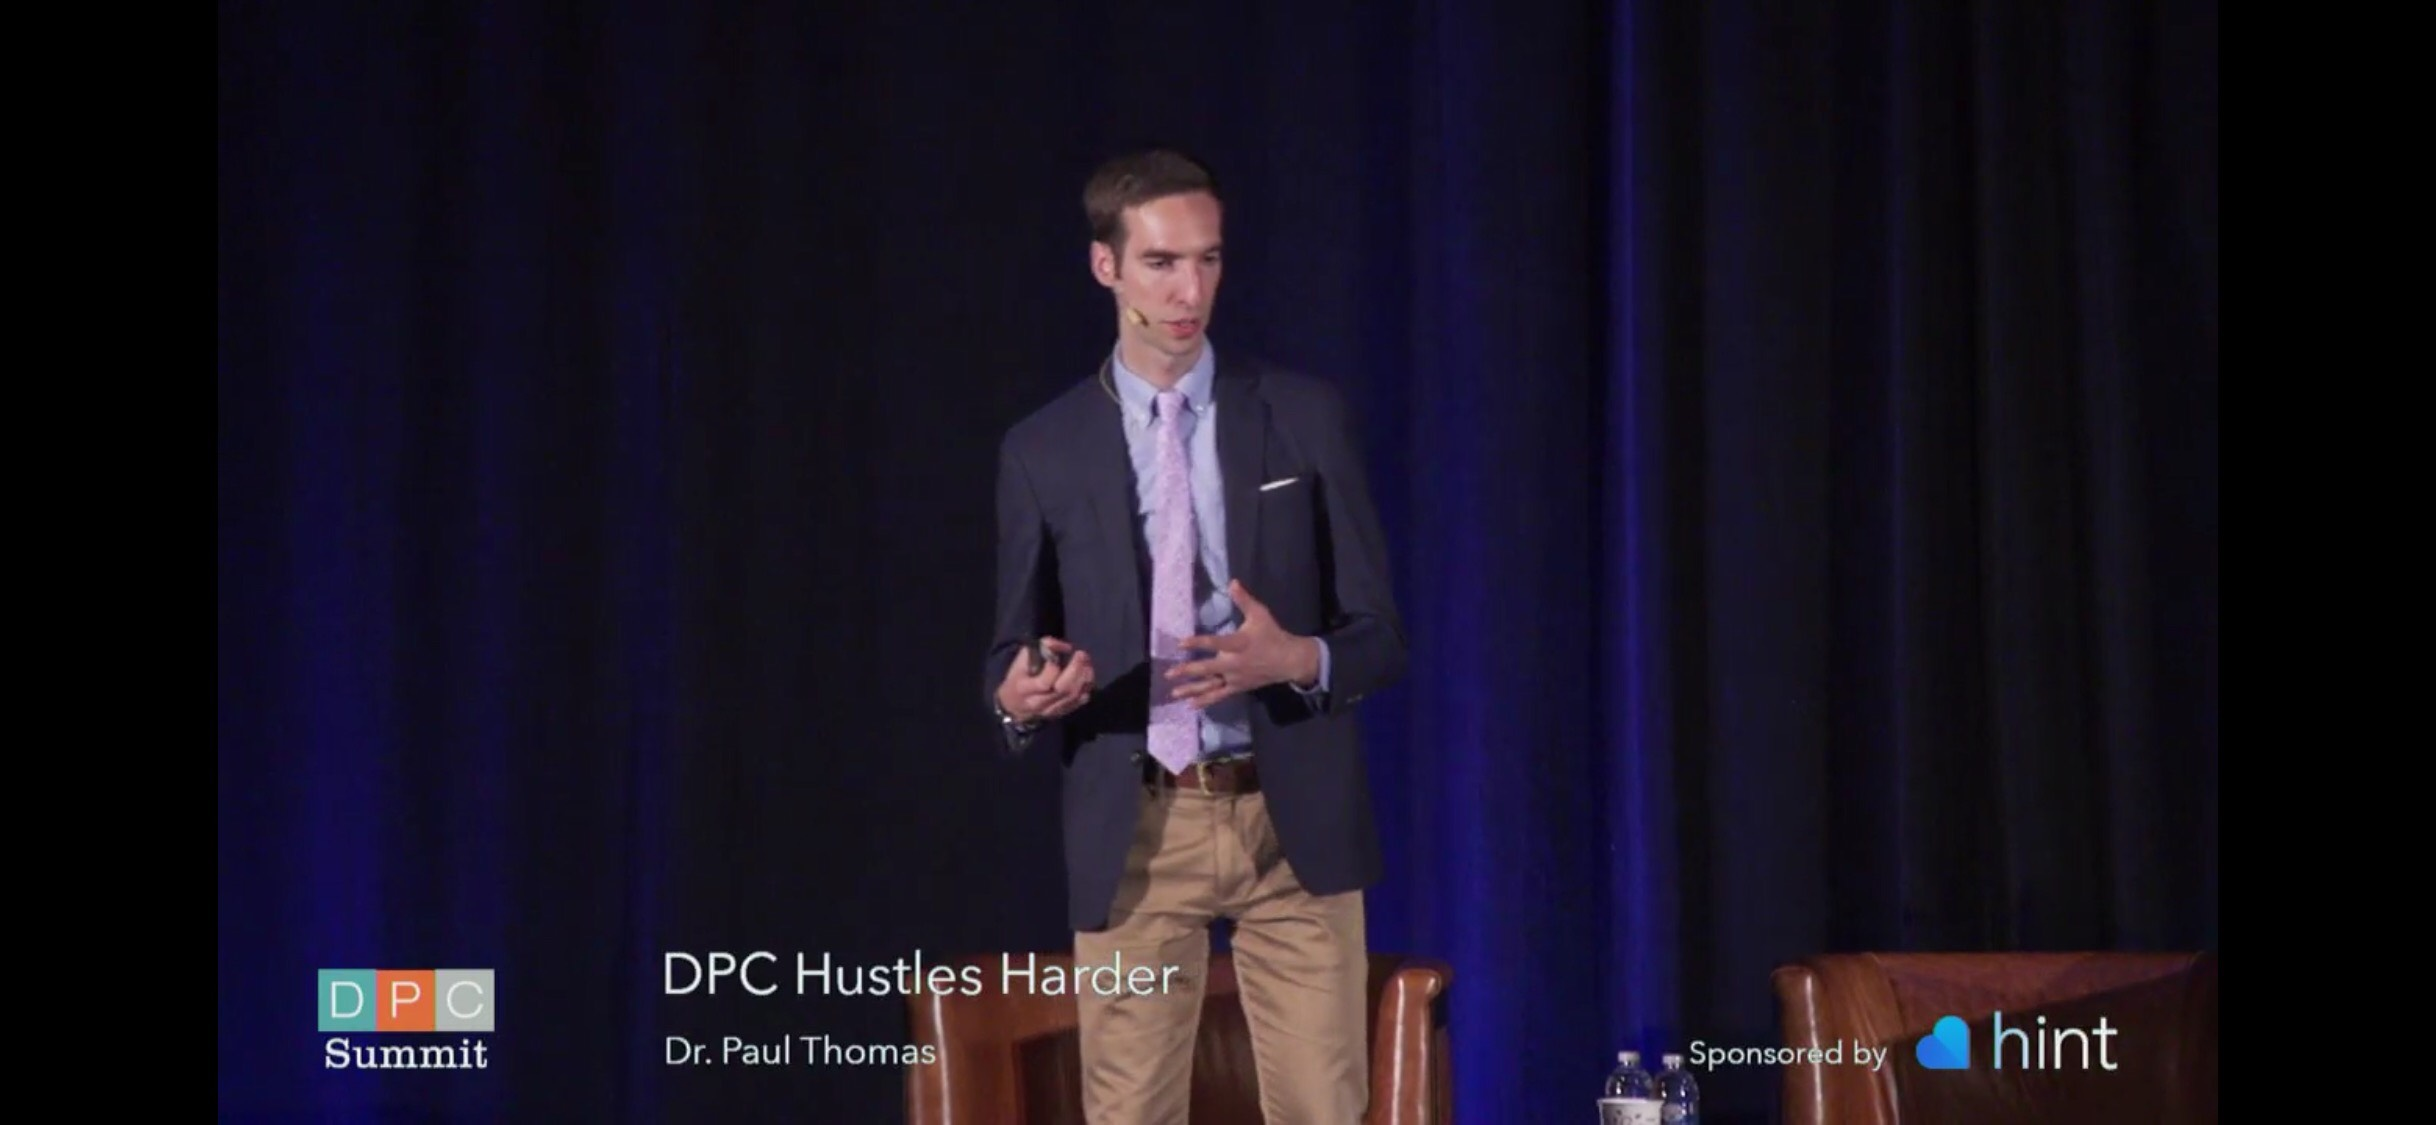 2018.07.15 AAFP DPC Summit 2018 DPC Hustles Harder with Dr. Paul Thomas.jpg